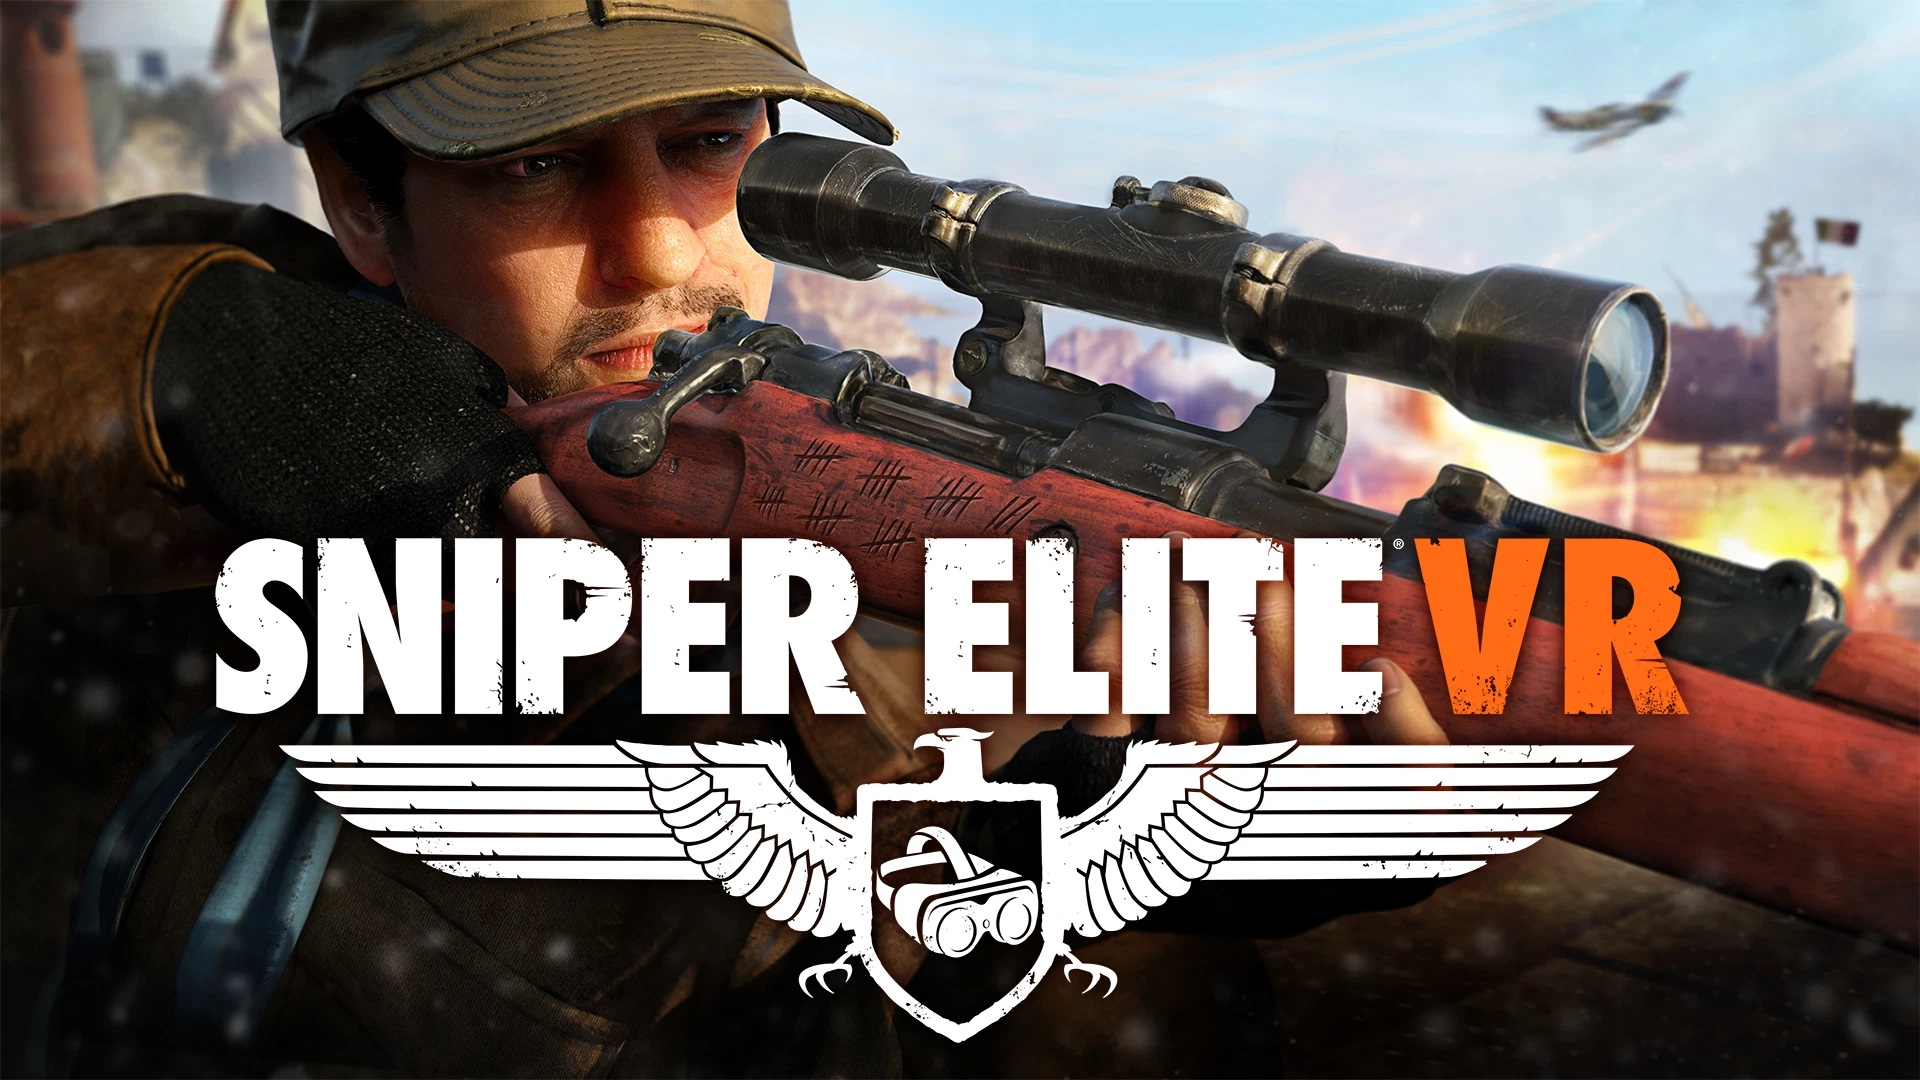 SNiper Elite VR - Best Tactical Shooter Video Game of 2021 for PC